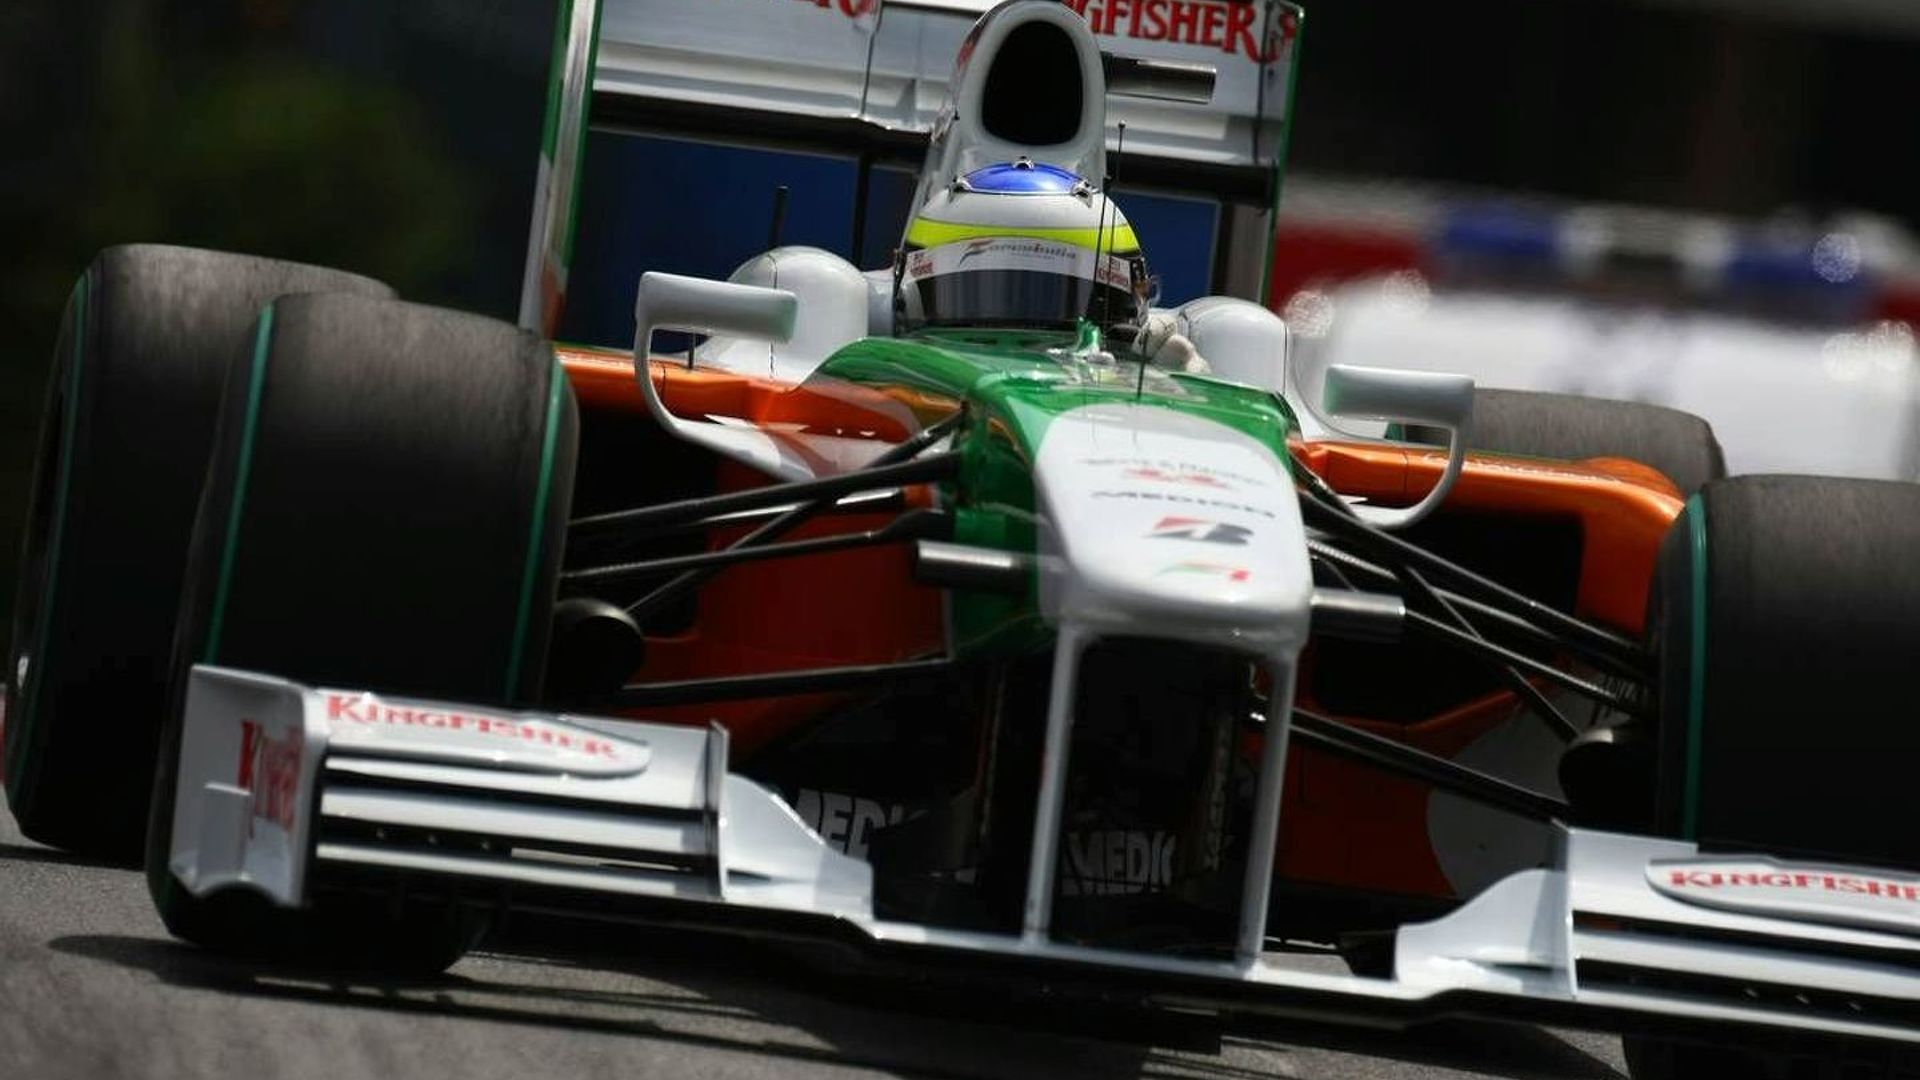 Fisichella's name to disappear from GP2 grid